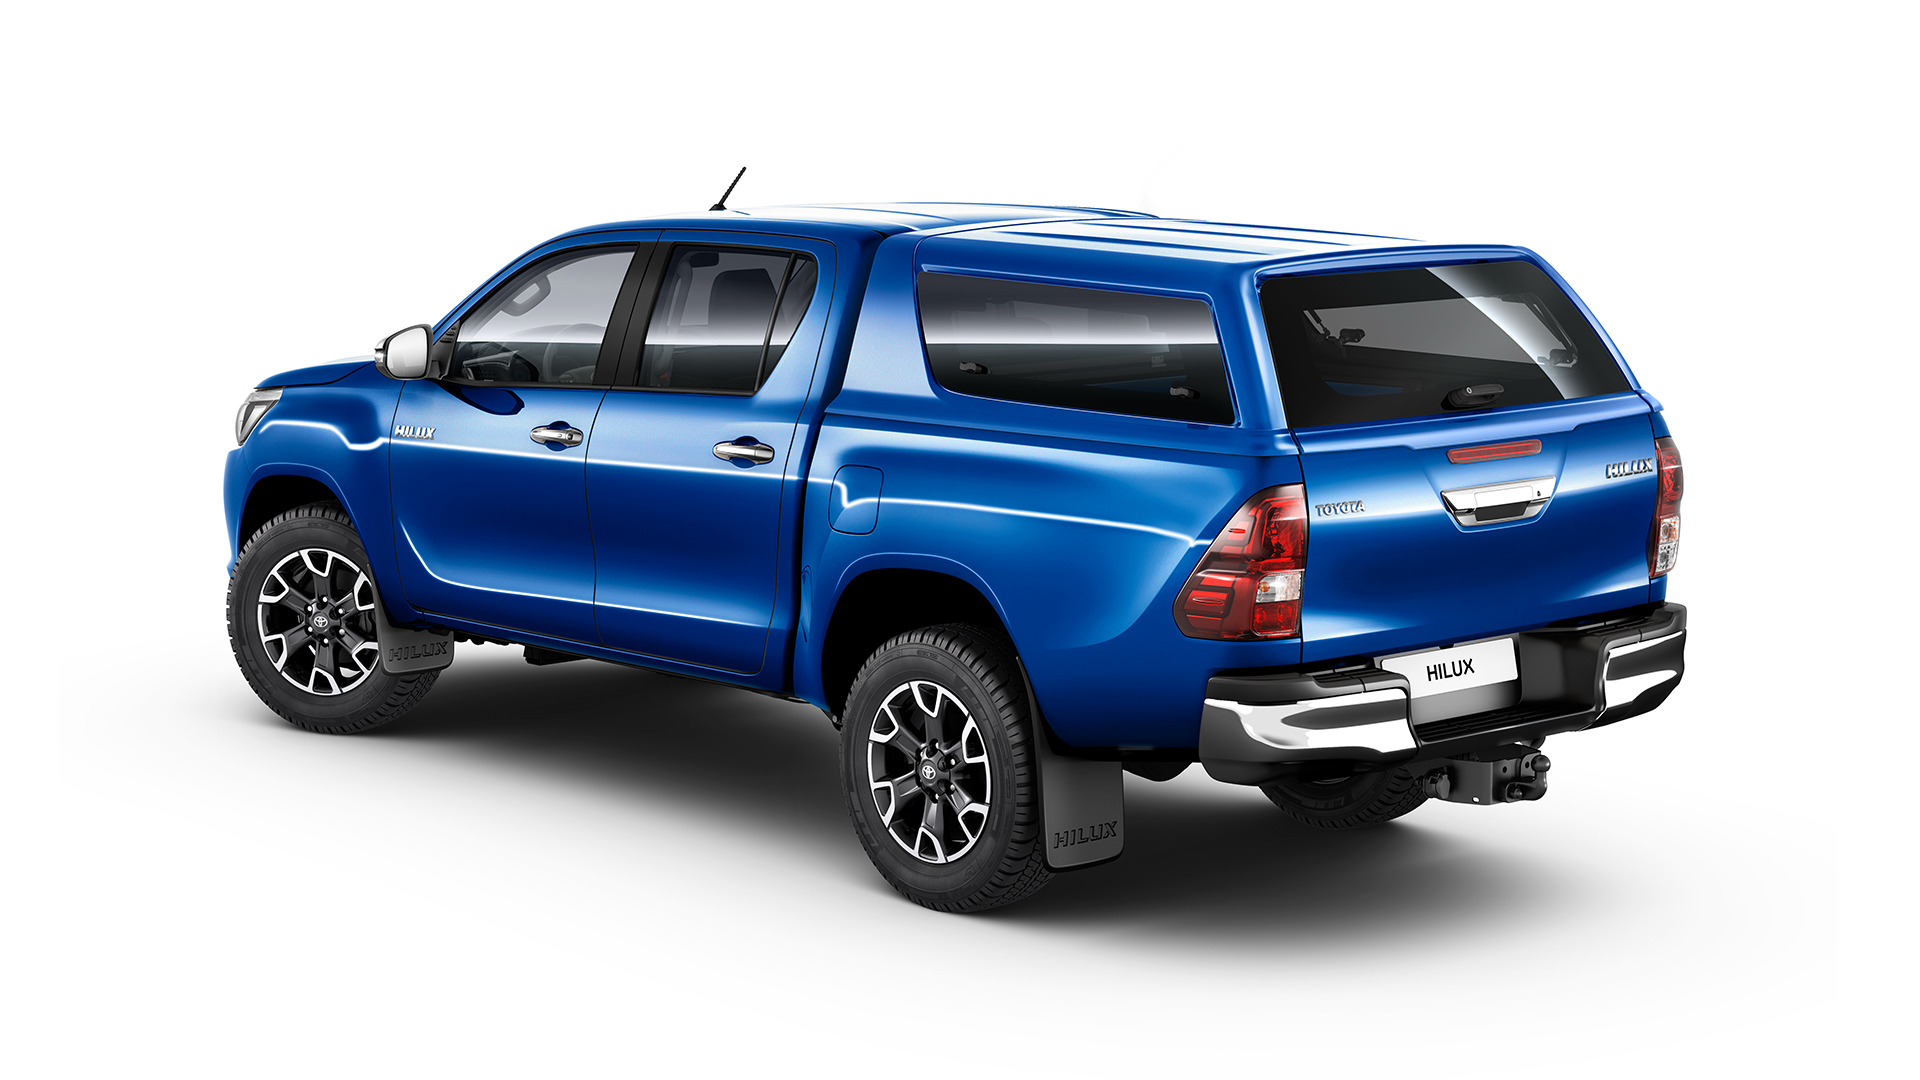 Hilux Overview & Features